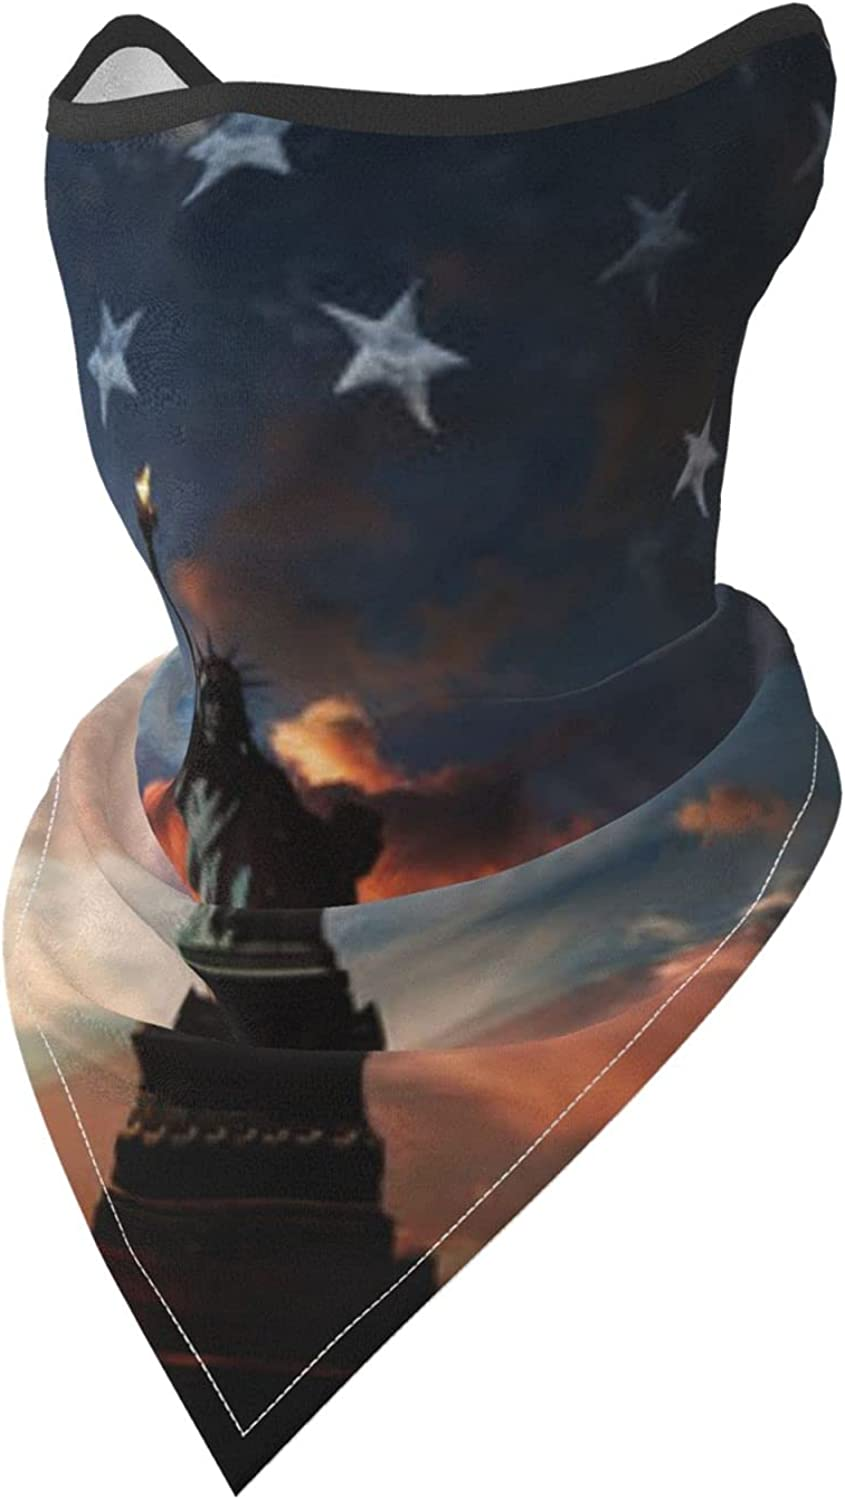 Statue of Liberty wth American Flag Picture Breathable Bandana Face Mask Neck Gaiter Windproof Sports Mask Scarf Headwear for Men Women Outdoor Hiking Cycling Running Motorcycling